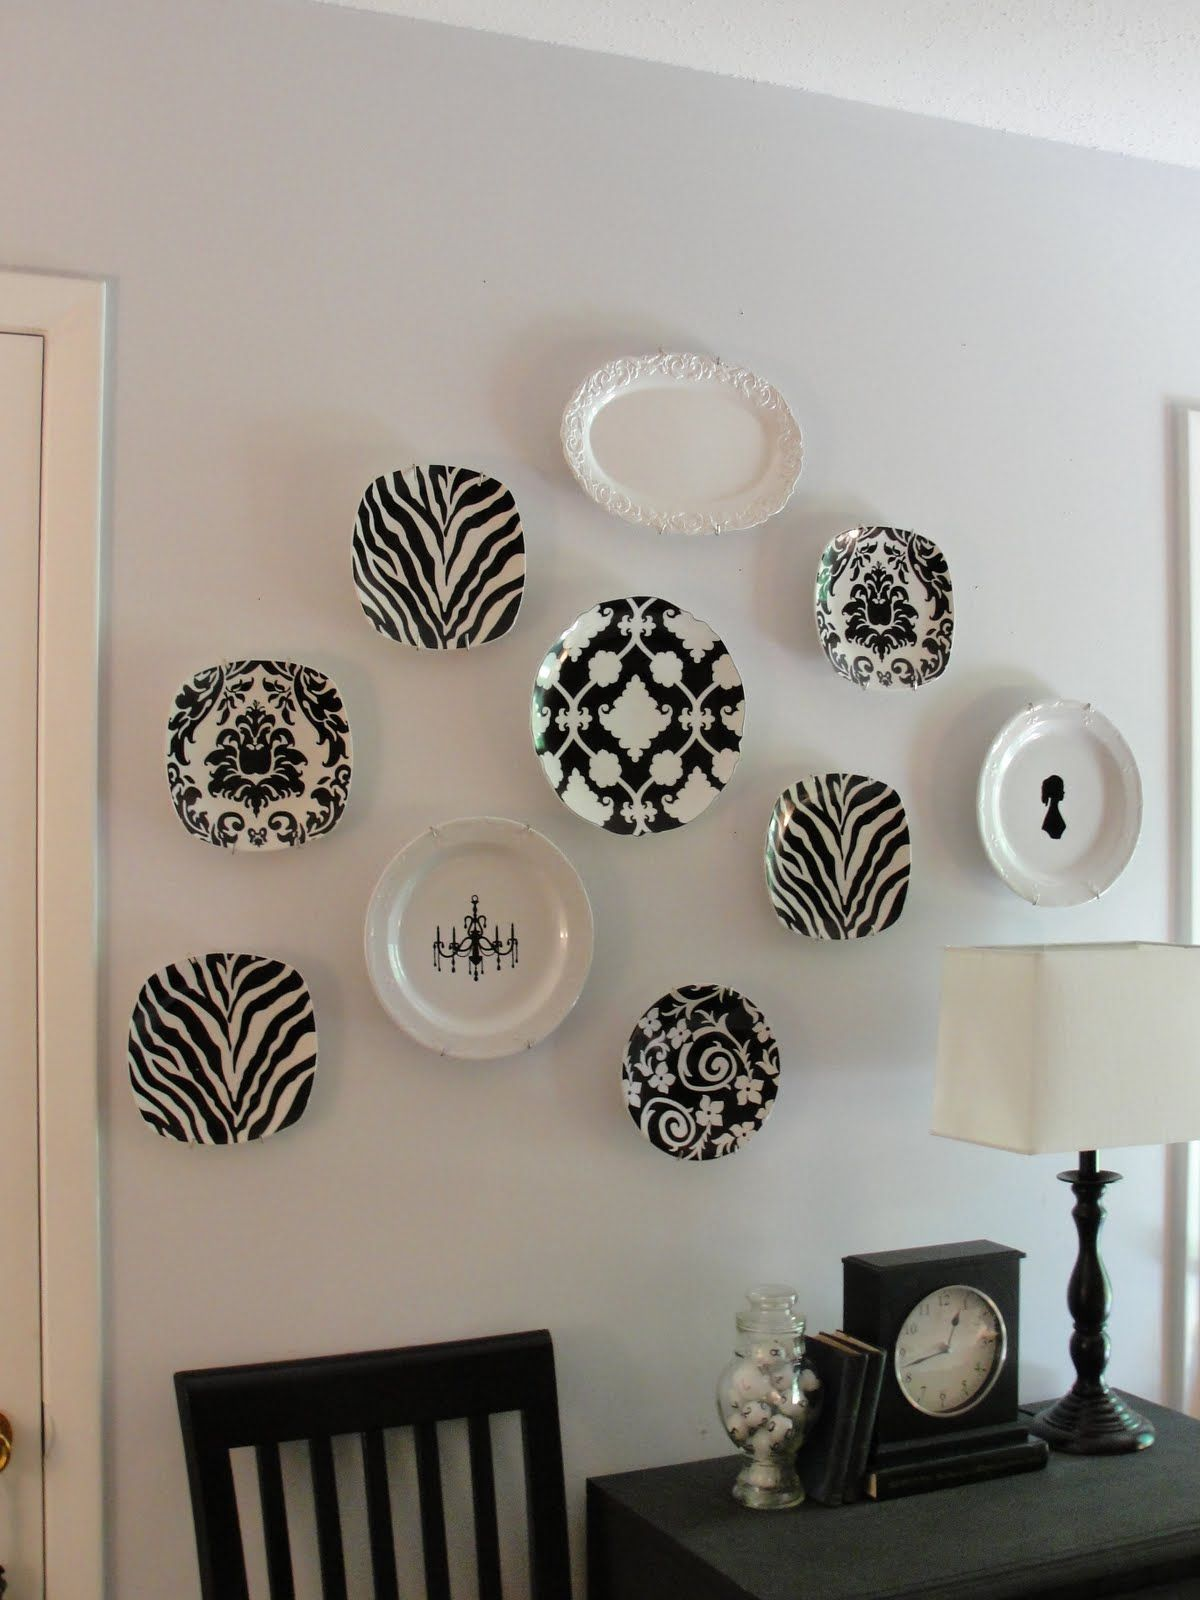 White Decorative Wall Plates Google Image Result For Http1.bp.blogspot_J9Ykcrc_3Pys8N